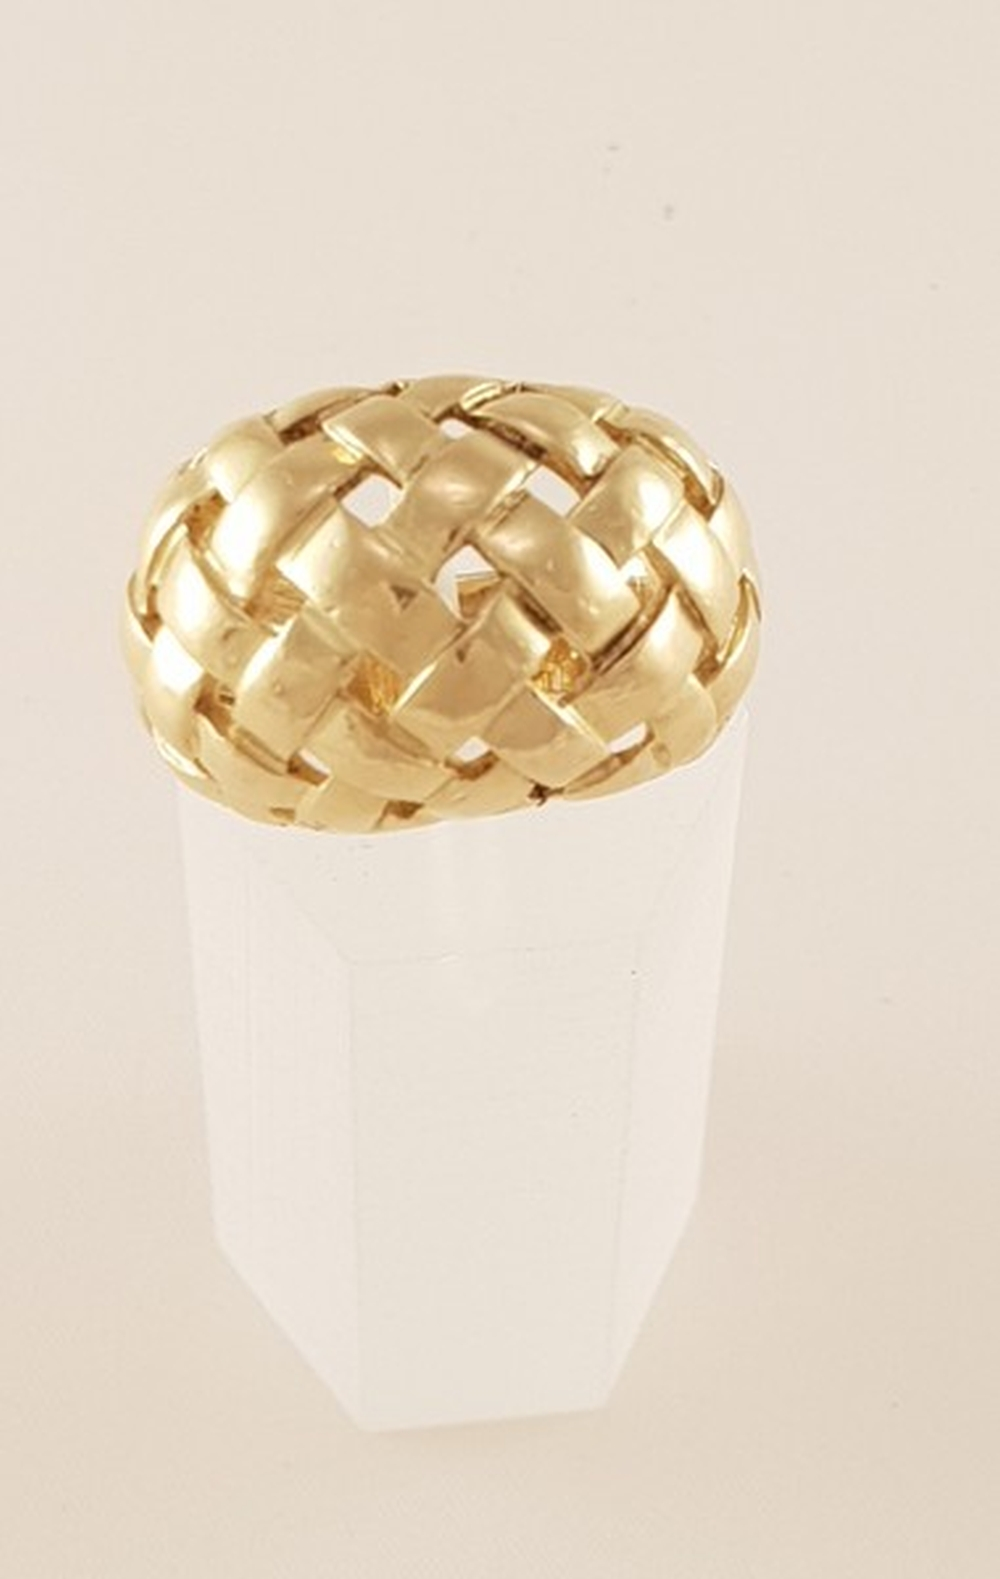 Tiffany & Co. Ring, Modell: Vannerie